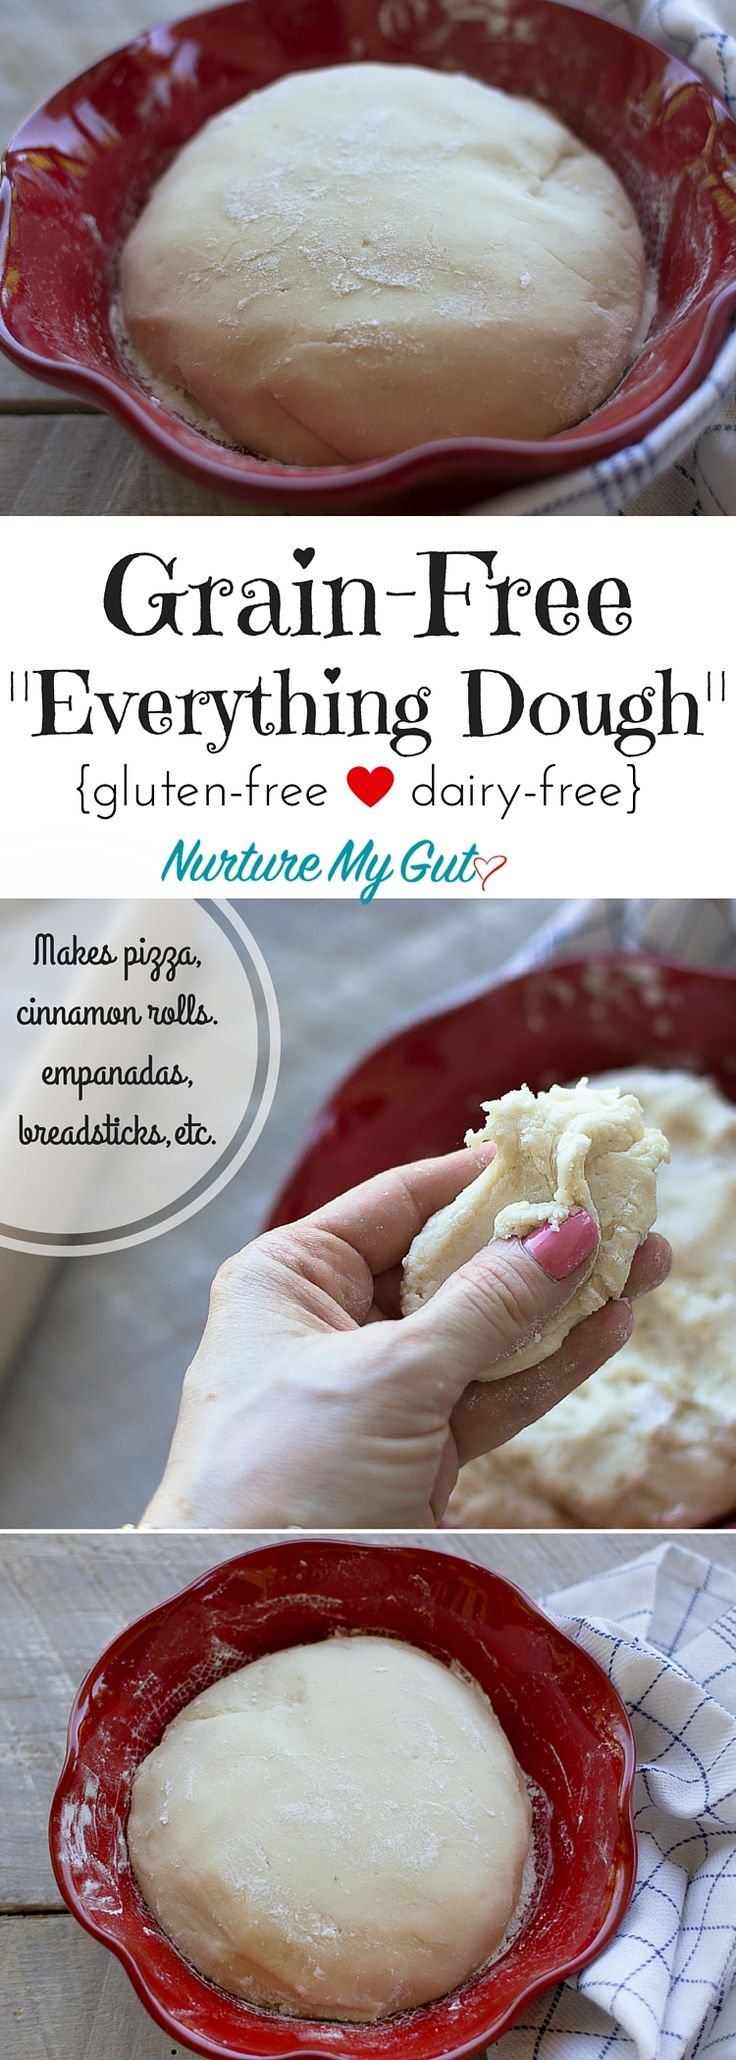 grain-free everything dough. dairy free, gluten free. made with grain free flour.